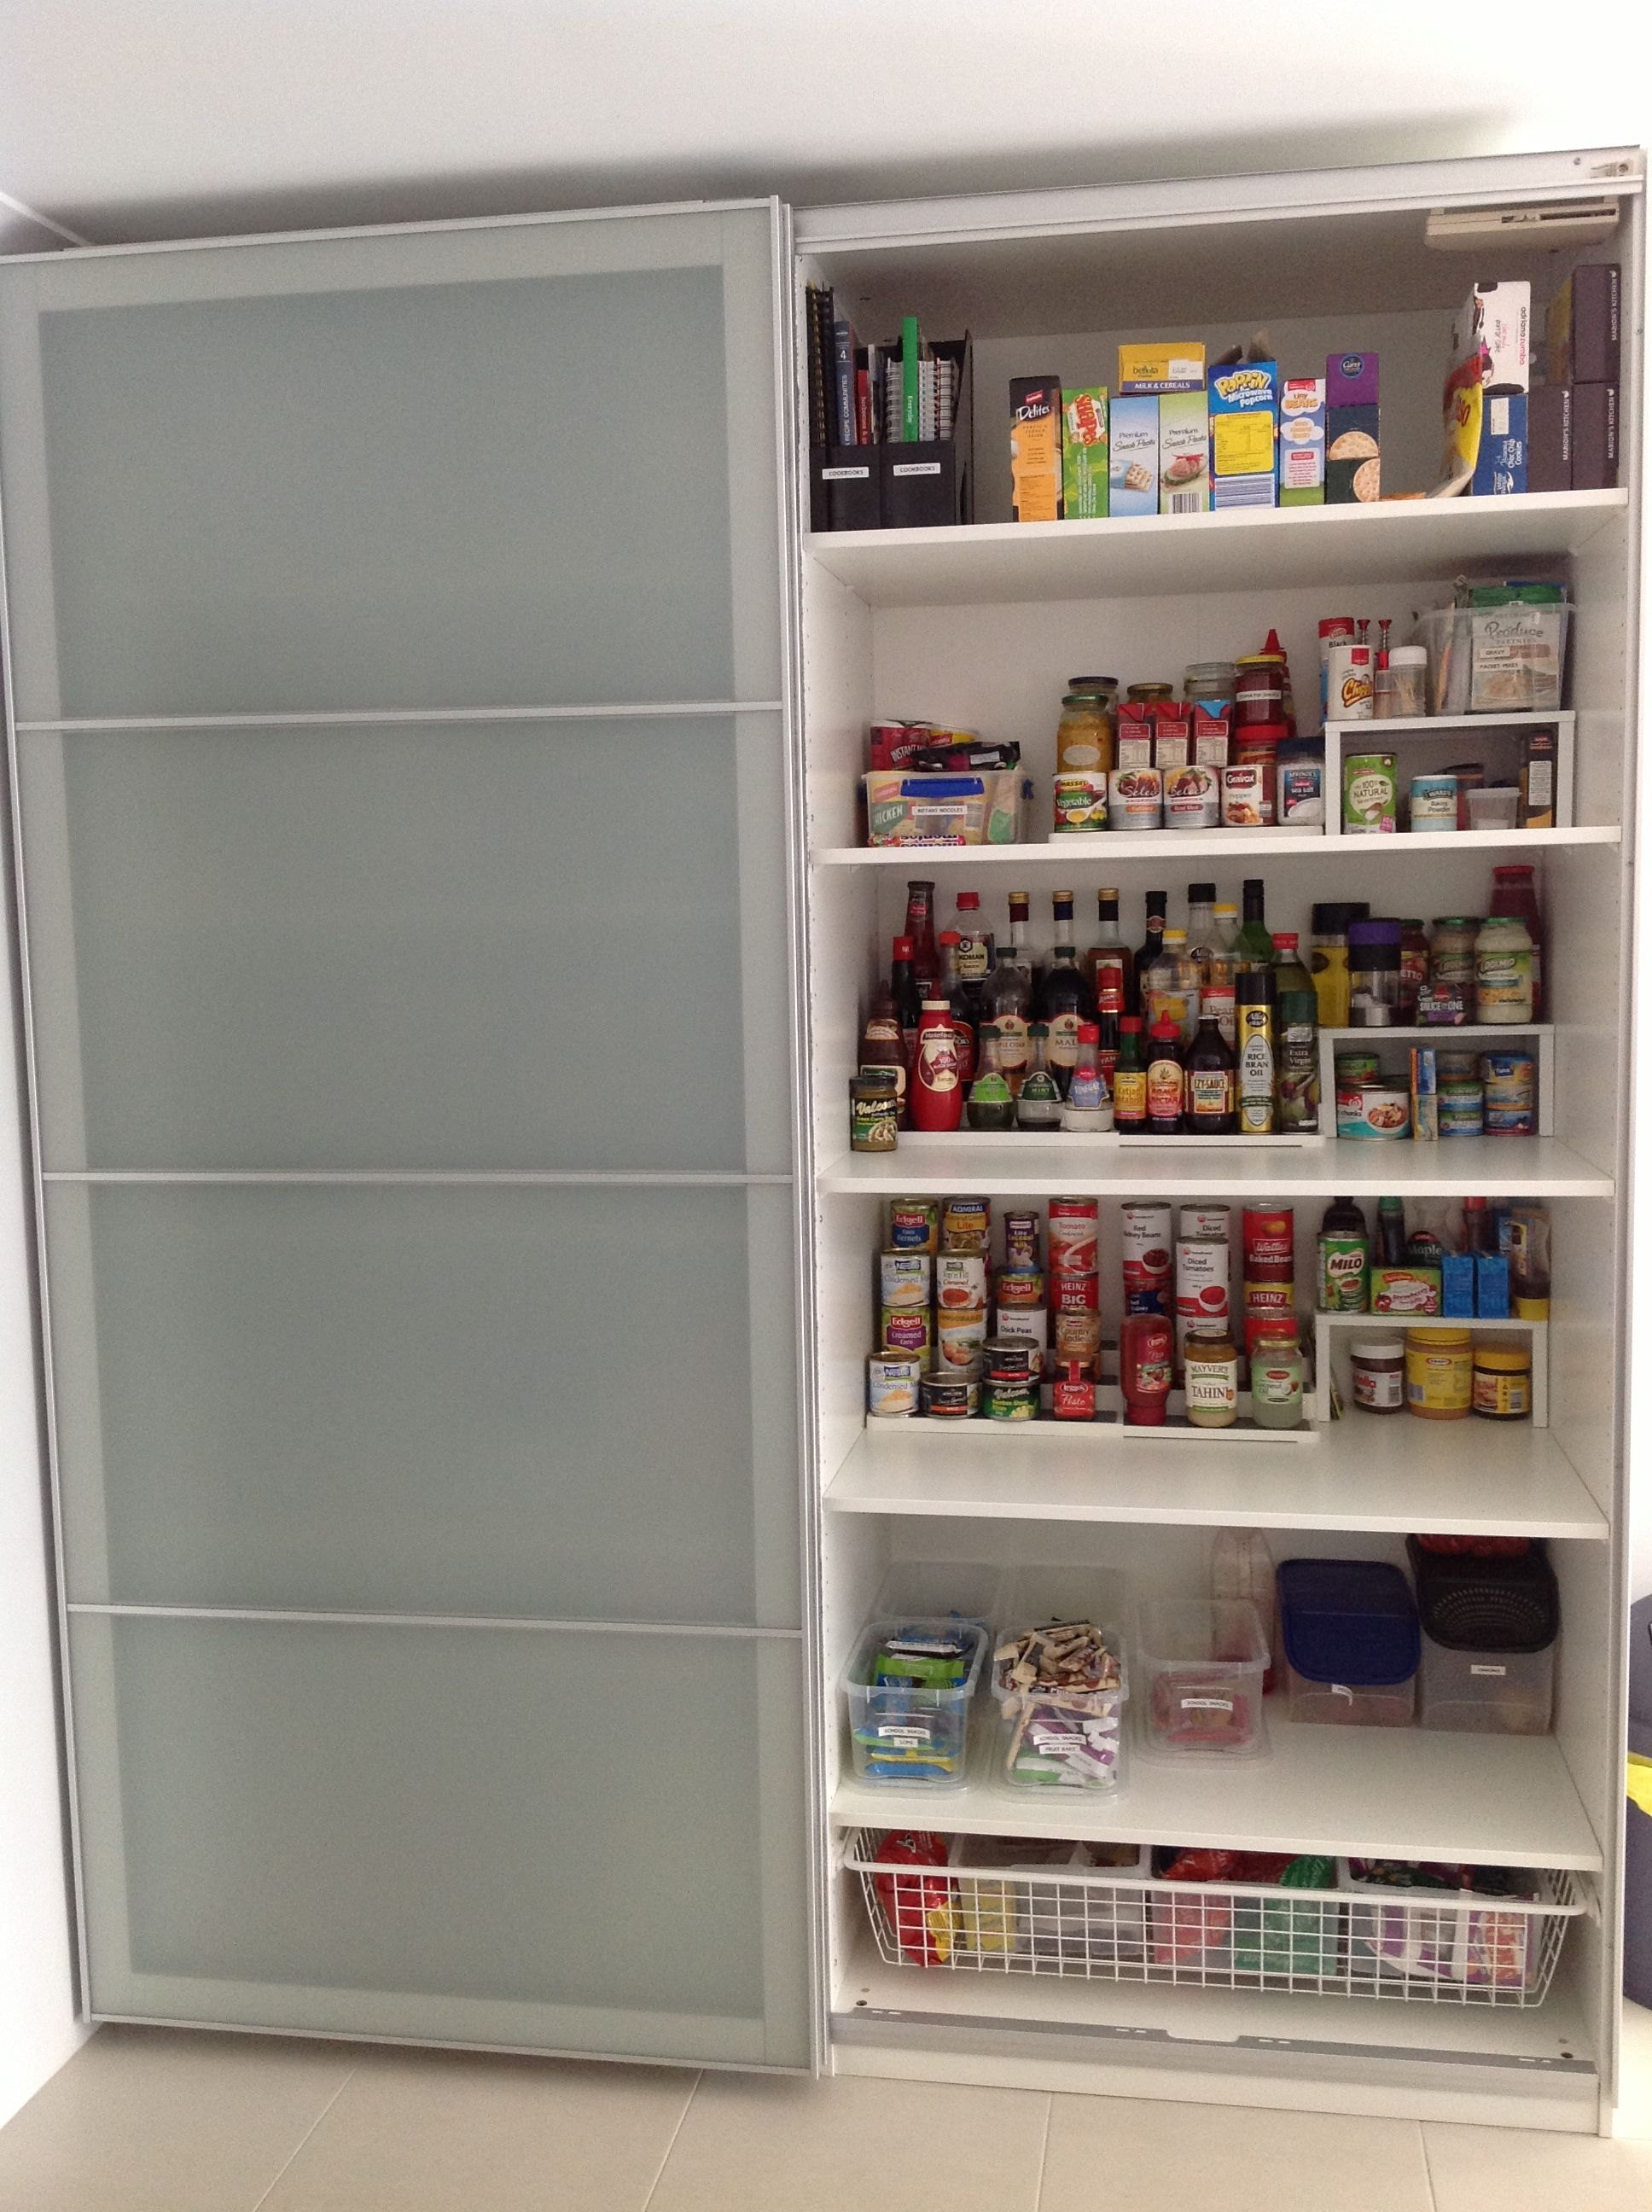 Ikea Pax Wardrobe used as a kitchen pantry but Id